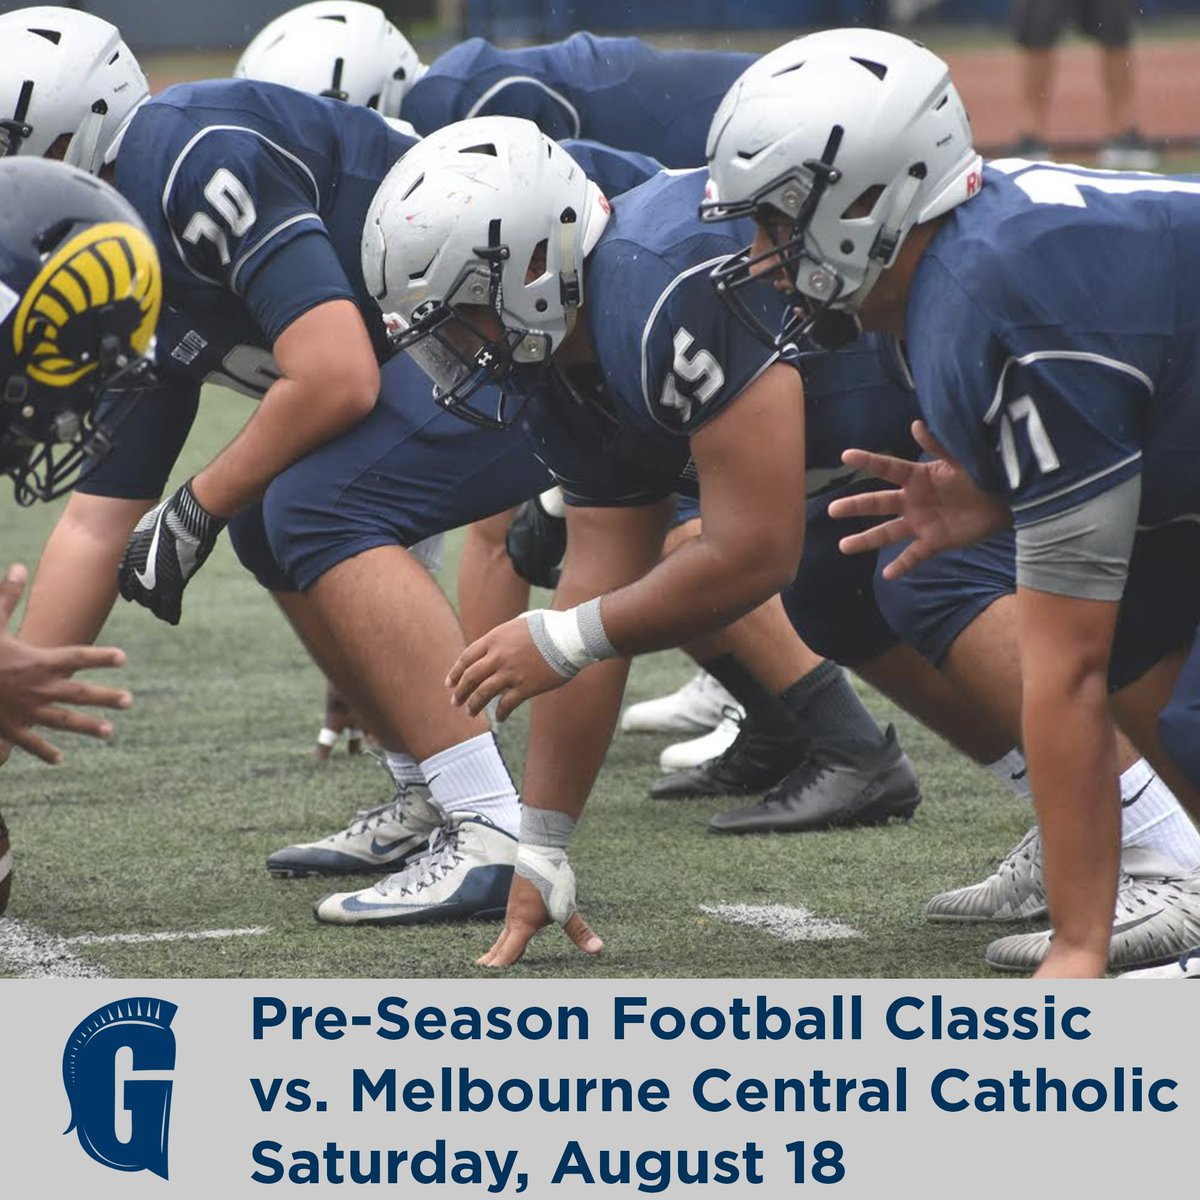 Join us at Sean Taylor Memorial Field on Saturday, August 18 at 12:00 p.m. for the Pre-Season Football Classic. Come cheer on the Raiders as they take on Melbourne Central Catholic! #GulliverPride #GulliverAthletics<br>http://pic.twitter.com/Y2rifHi5v0